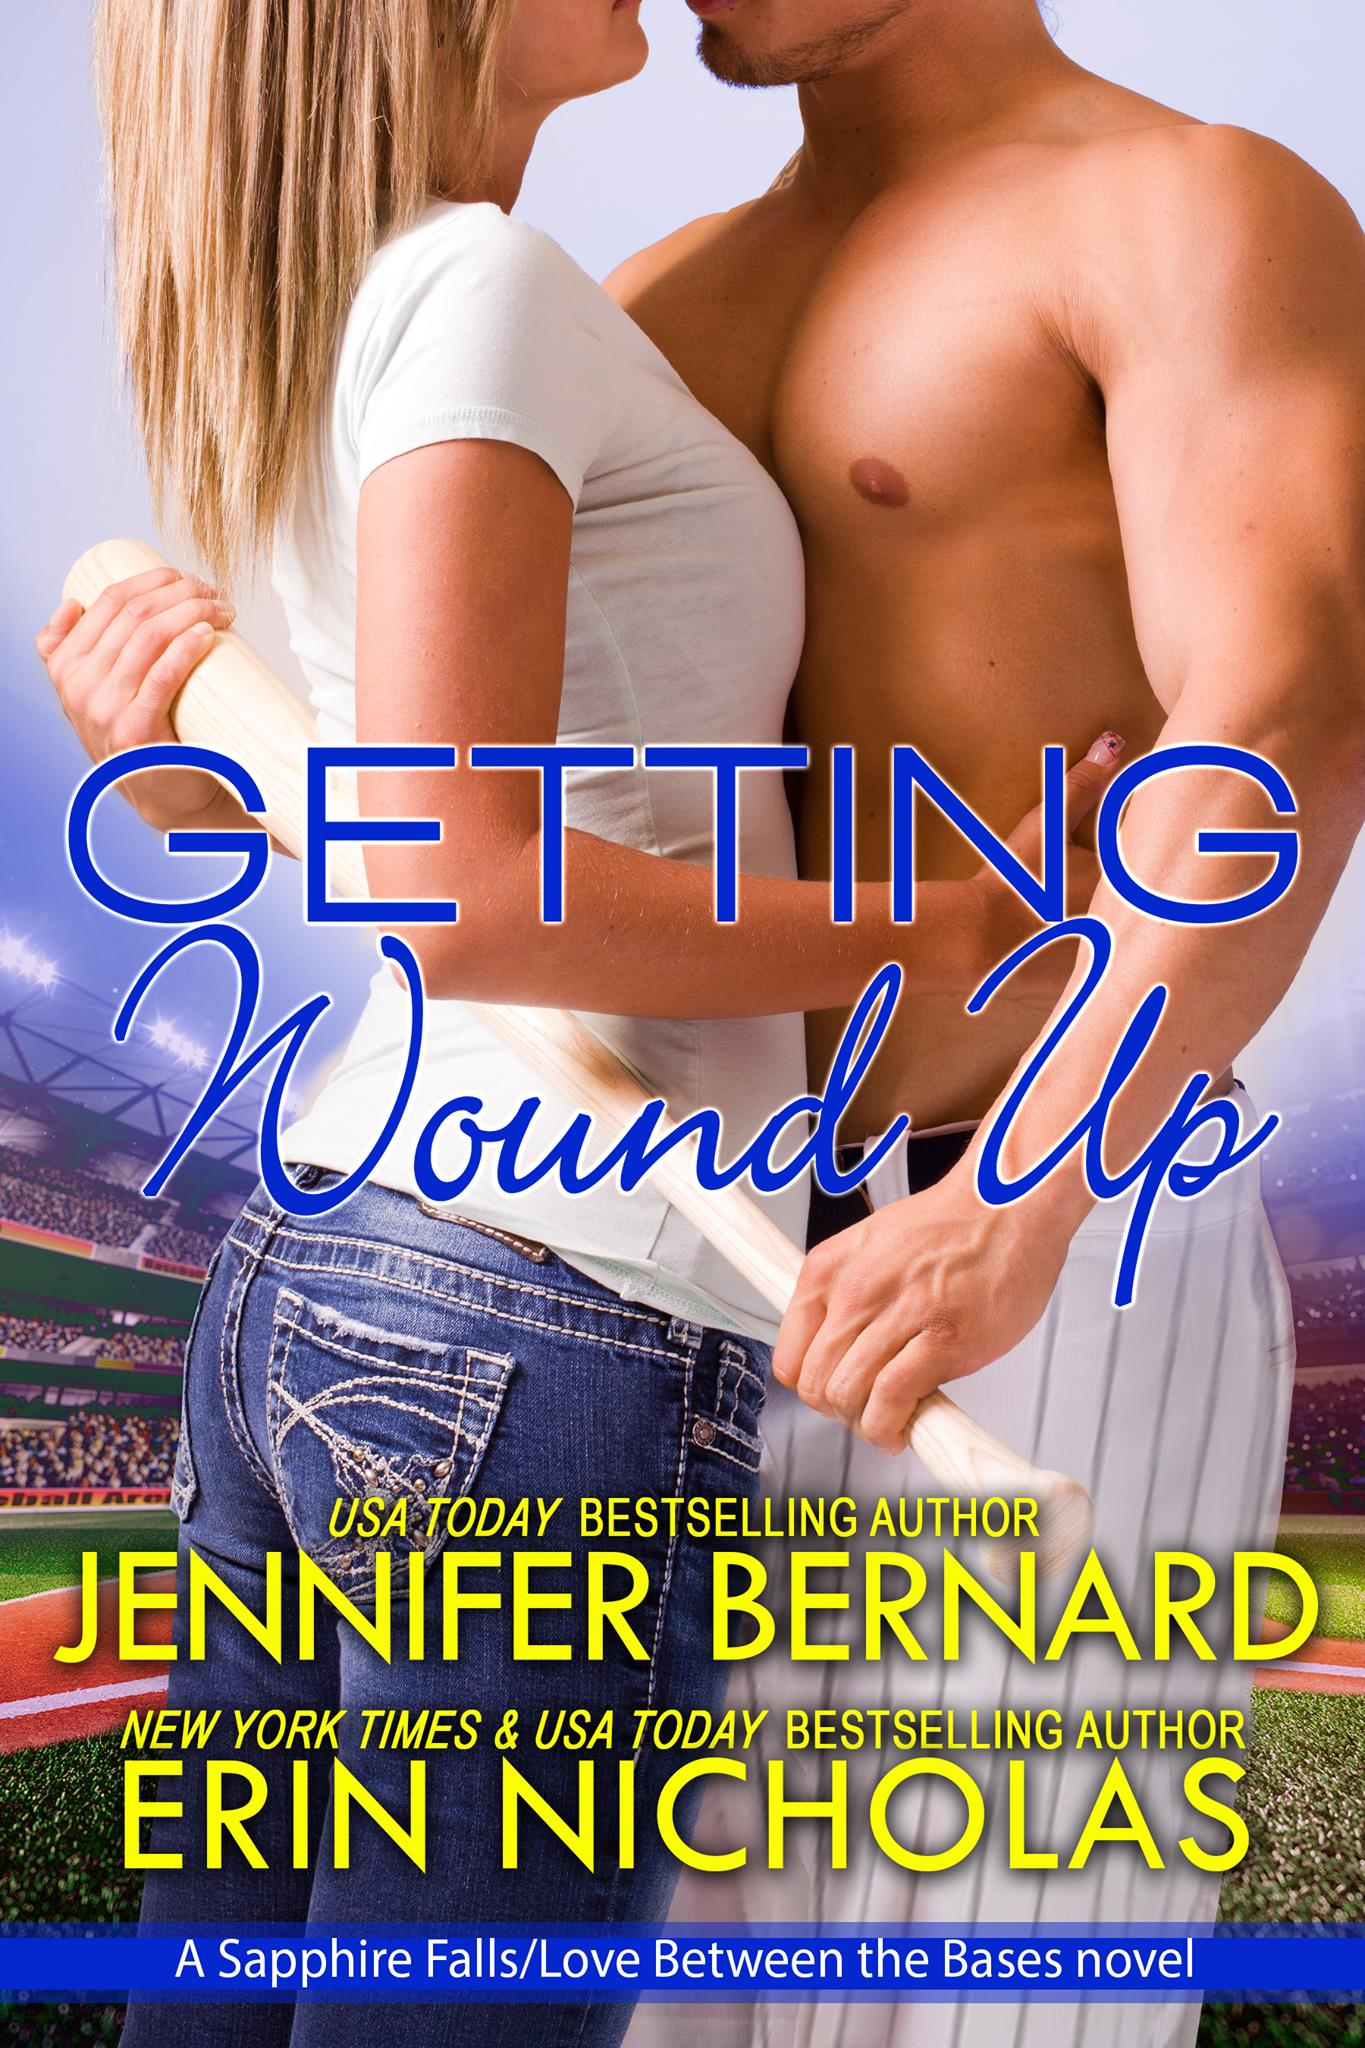 Getting Wound Up by Jennifer Bernard and Erin Nicholas